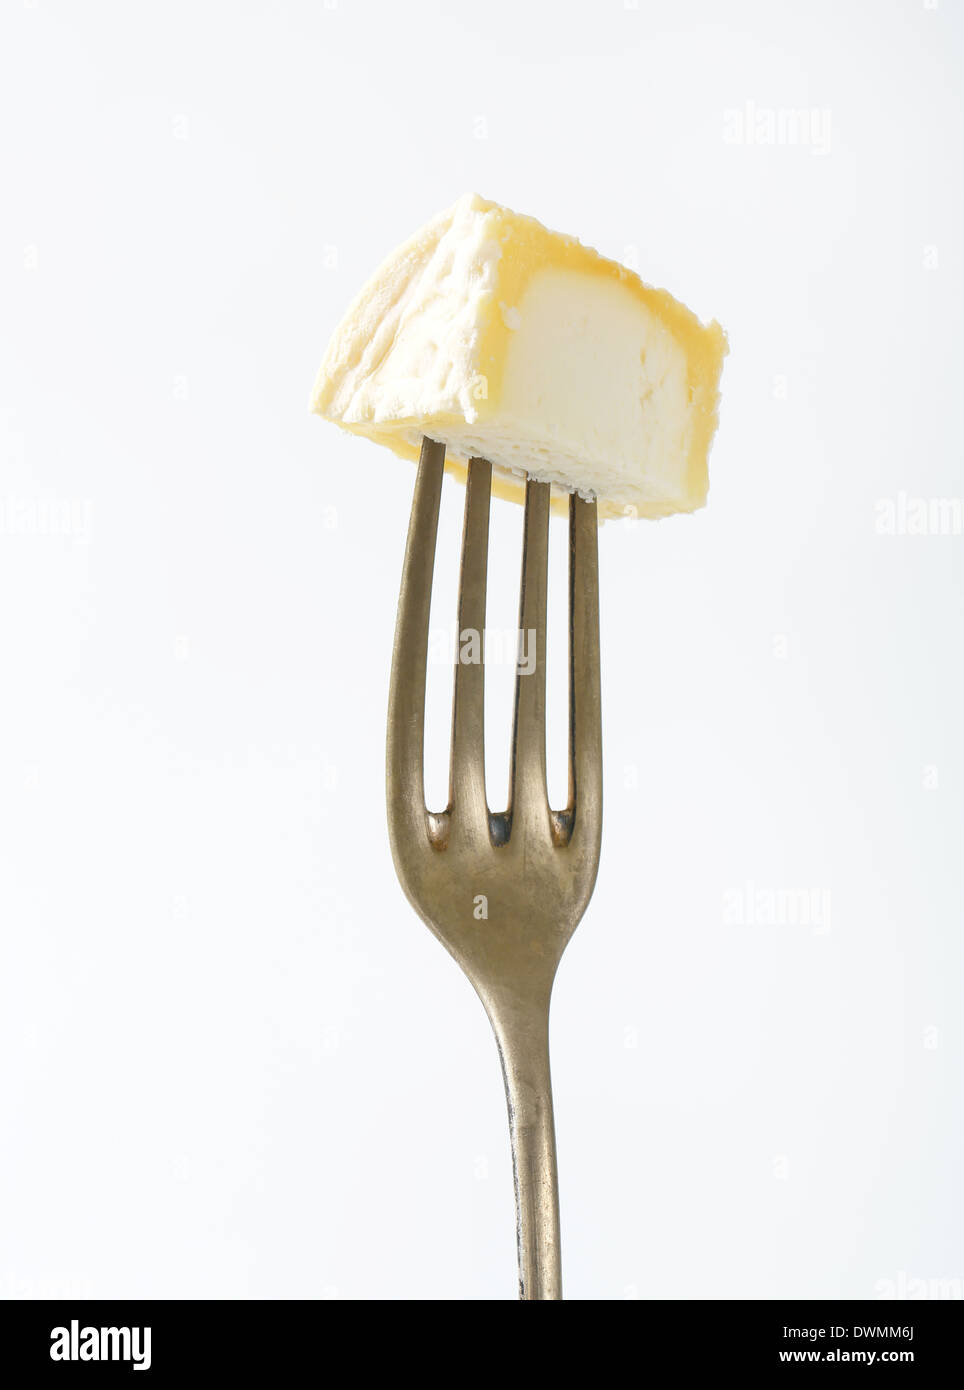 Piece of Chevre cheese on fork - Stock Image